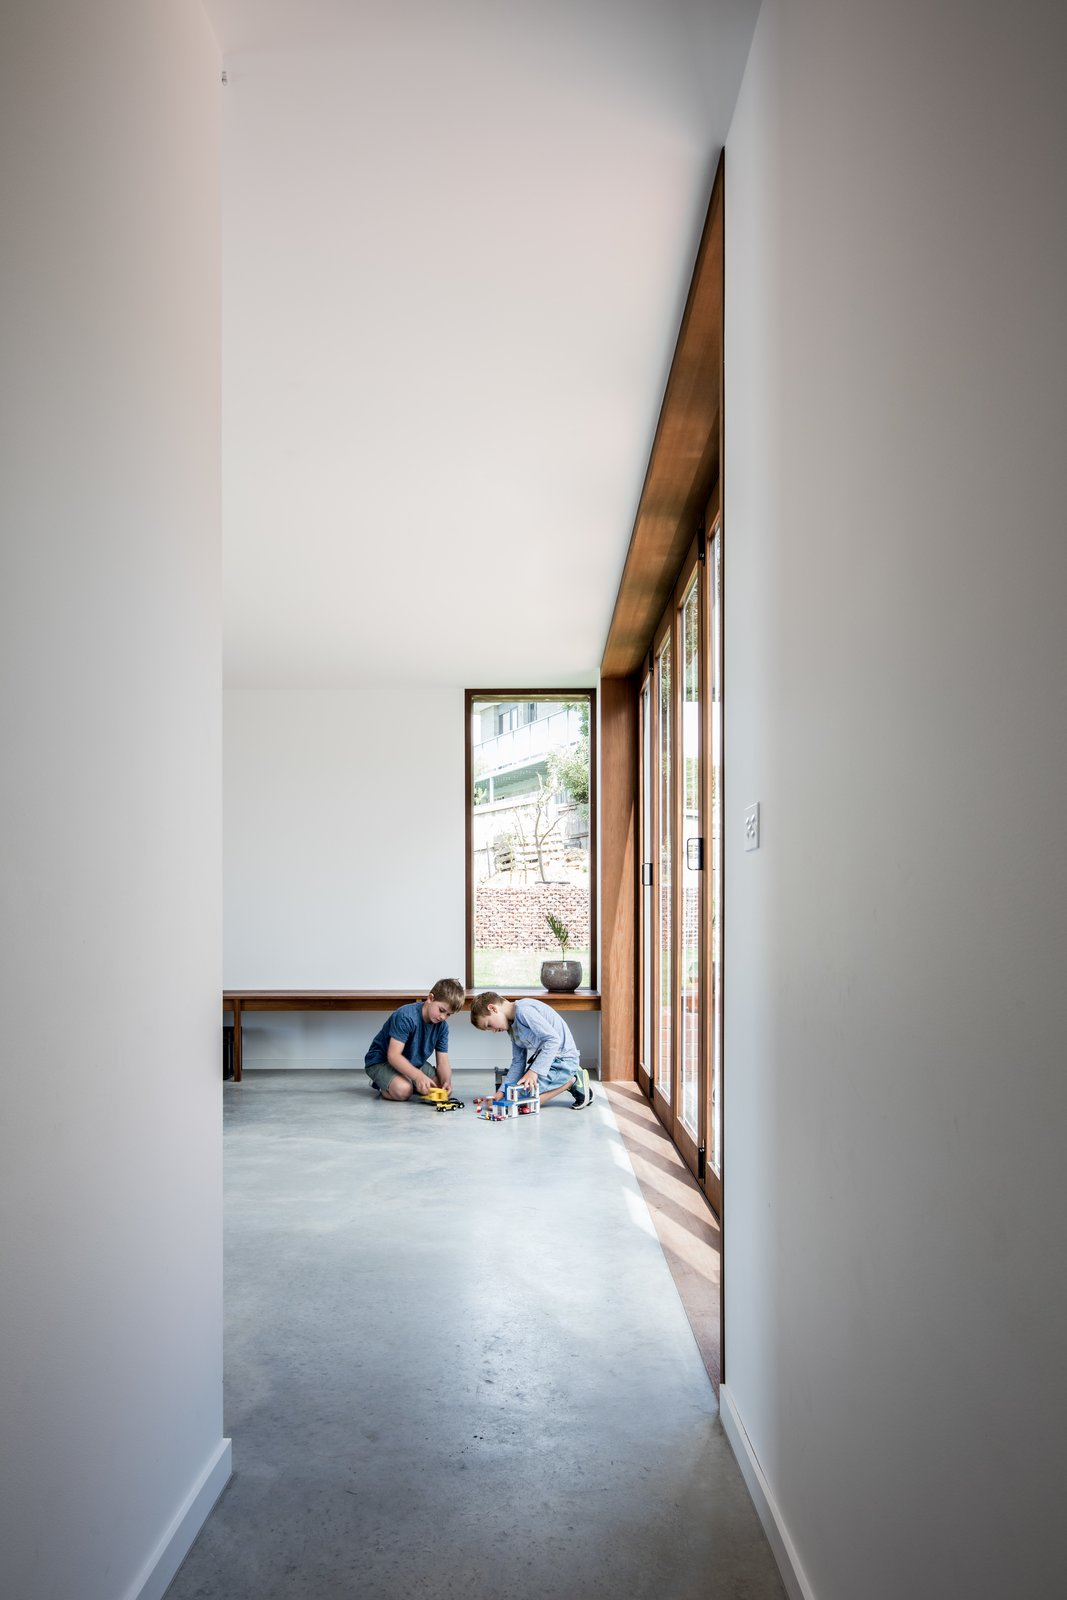 """In the new sitting room, the architects opted for timber-framed windows and doors. """"In this space the fixed joinery elements invert the original material strategy of the house,"""" they write."""